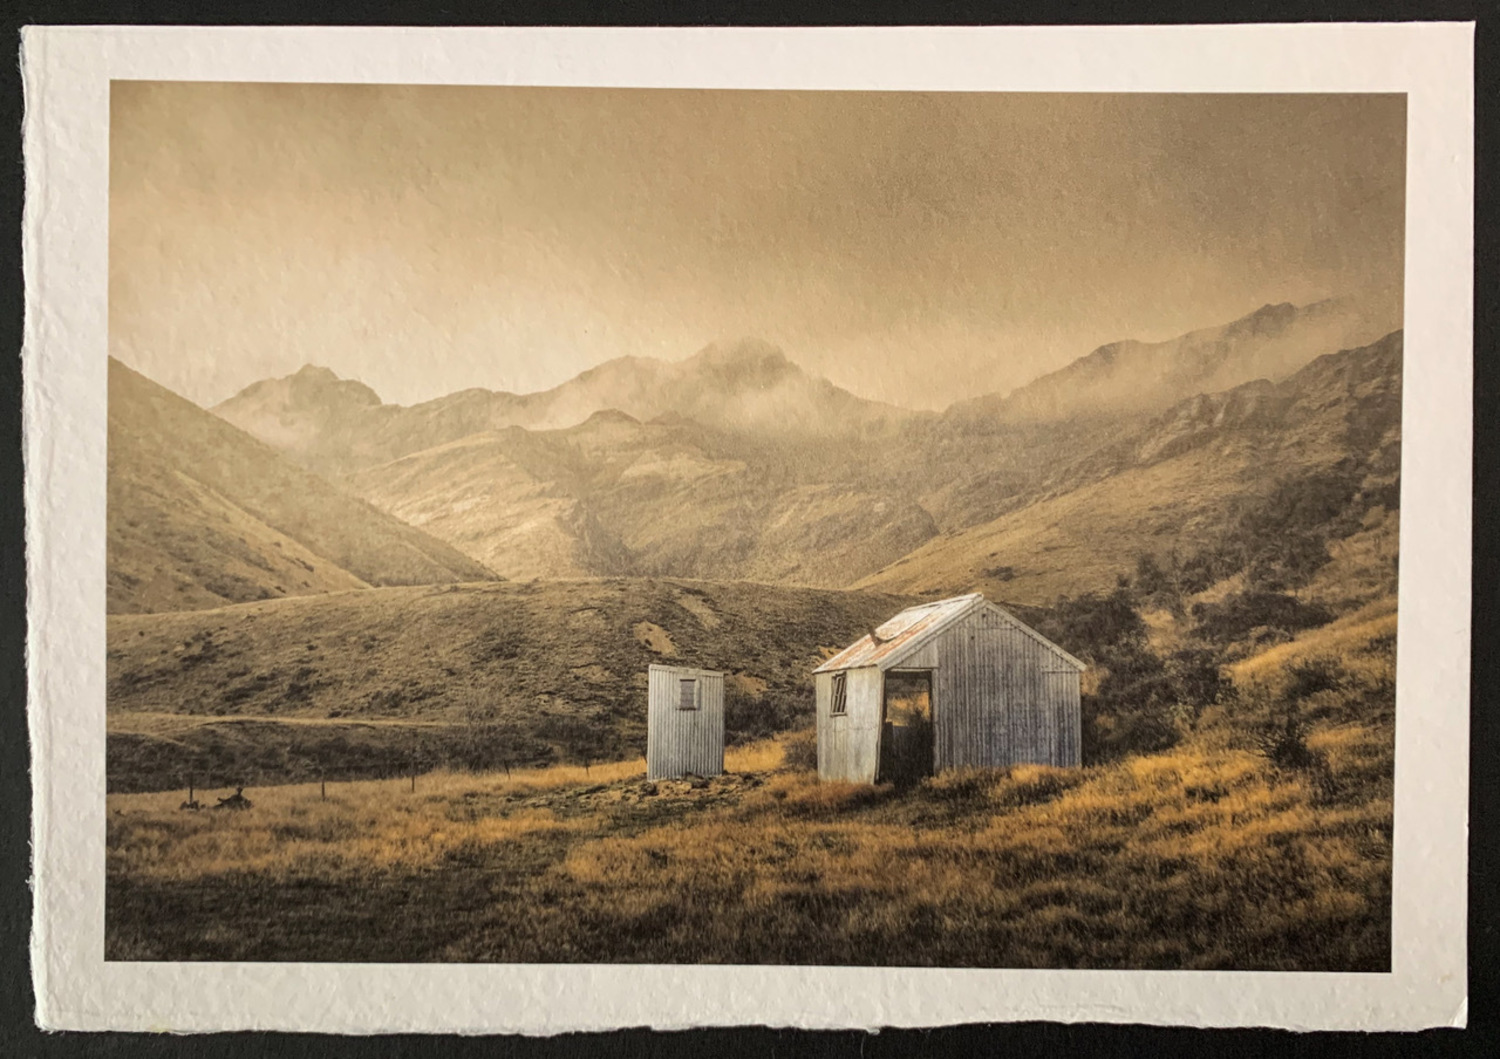 The Musterers Hut - East Meets West Solo Exhibition